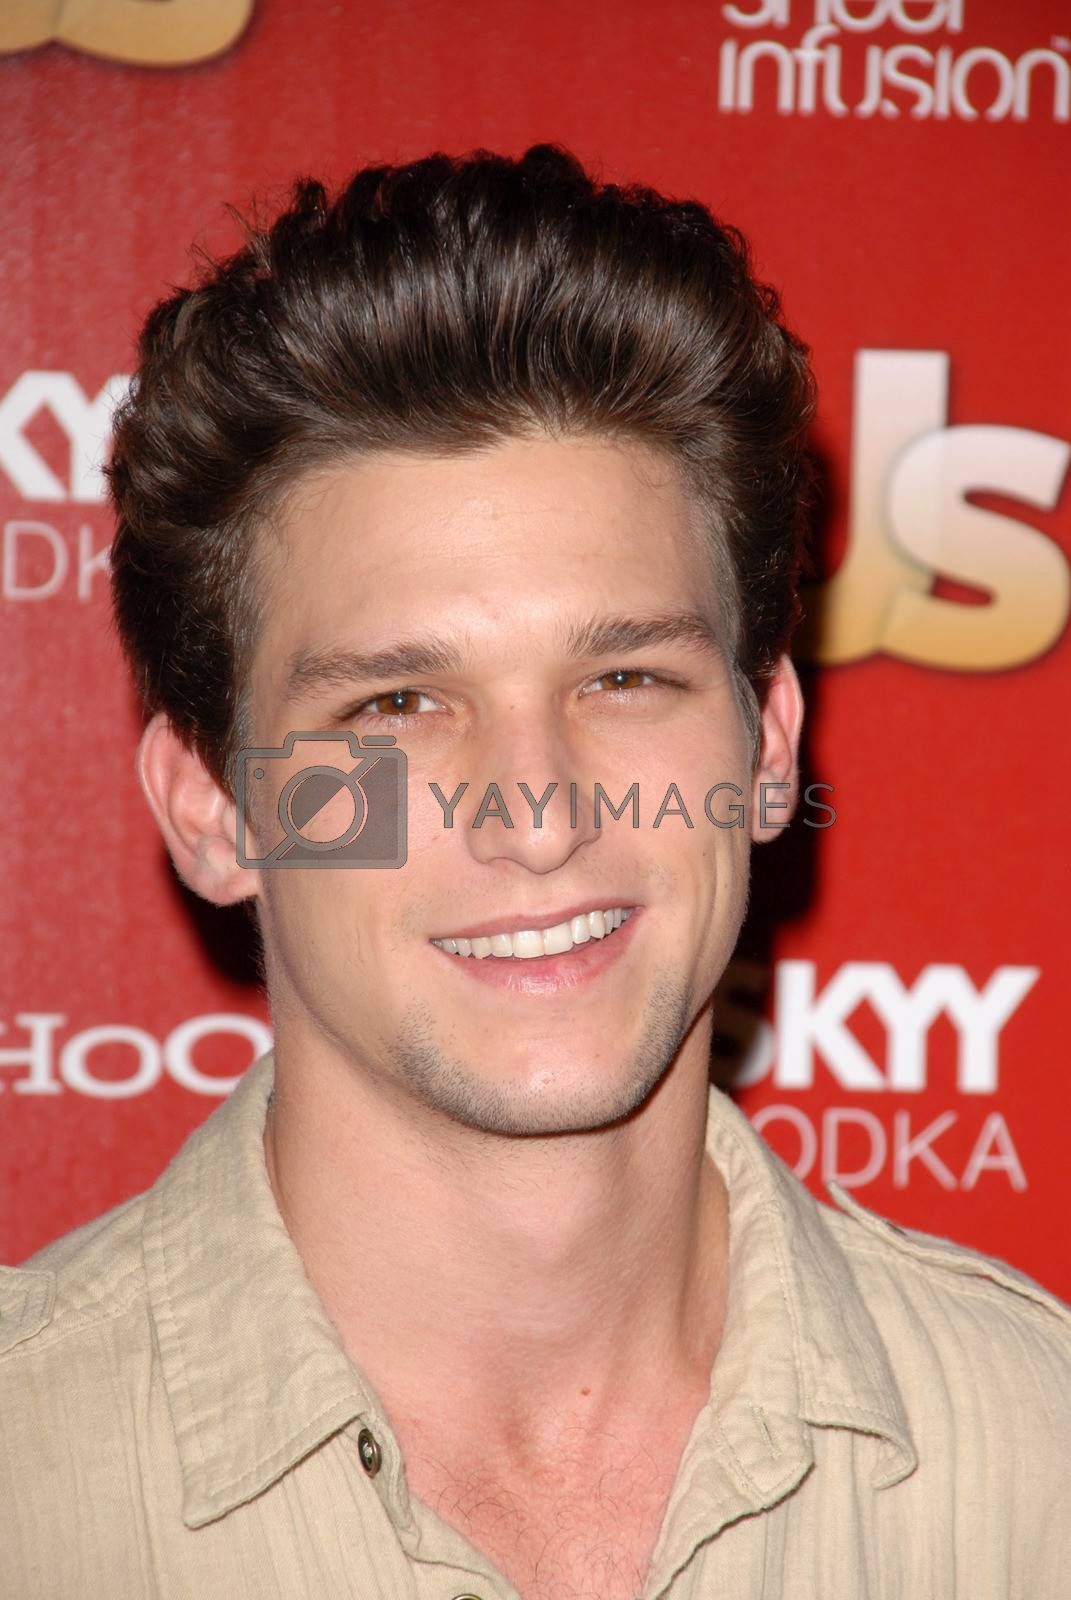 Daren Kagasoff Imagecollect Royalty Free Stock Image Stock Photos Royalty Free Images Vectors Footage Yayimages I love him, just love, that look, daren kagasoff, have a great friday, secret crush, image sharing, cute guys. yayimages